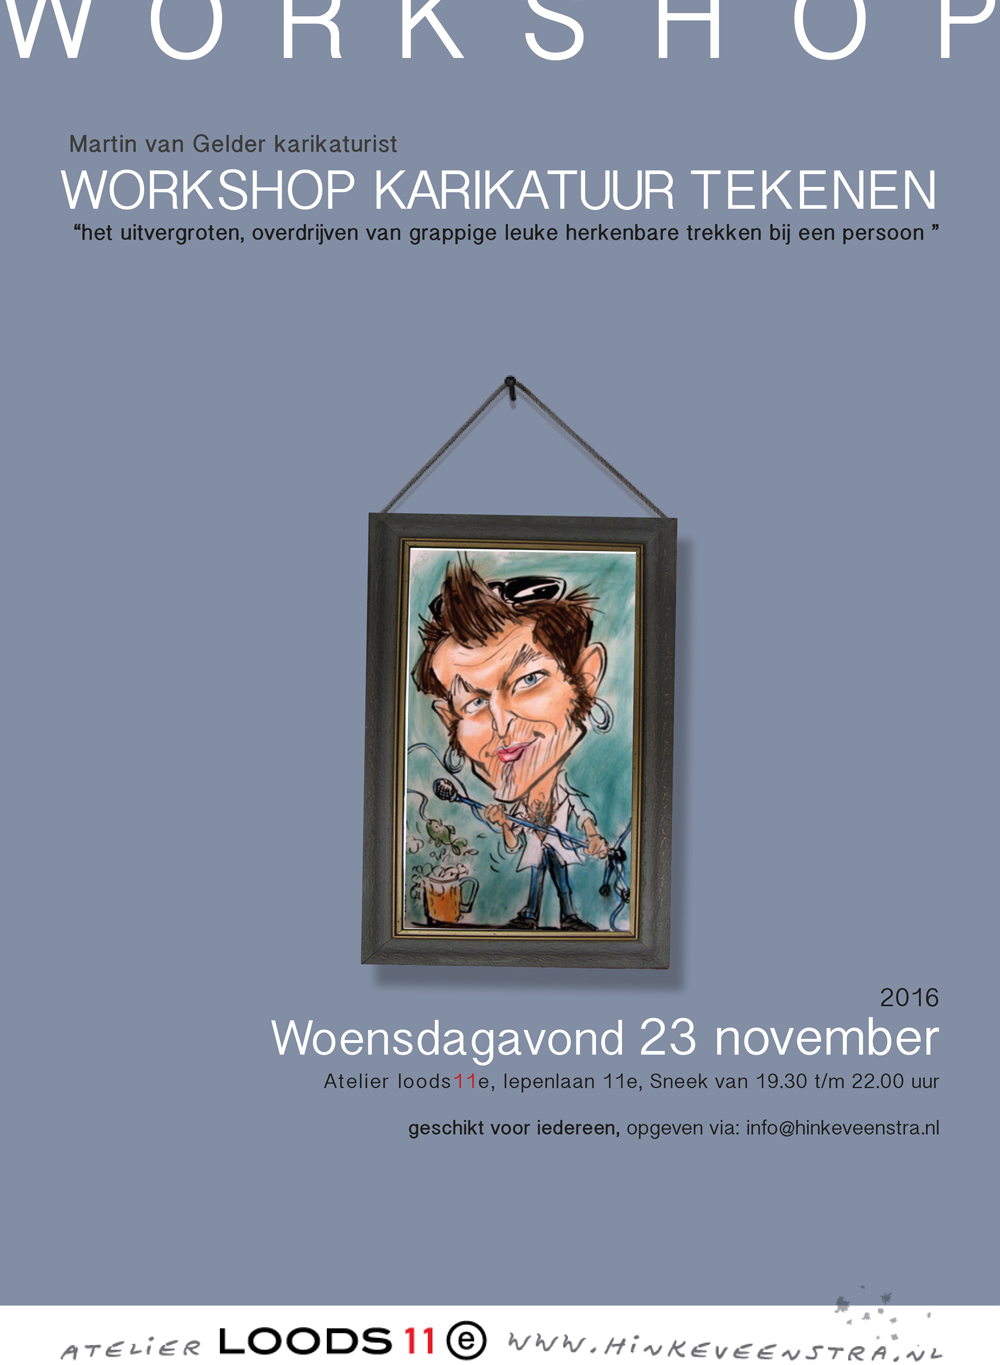 poster-workshop-iepenlaan-11e-,6